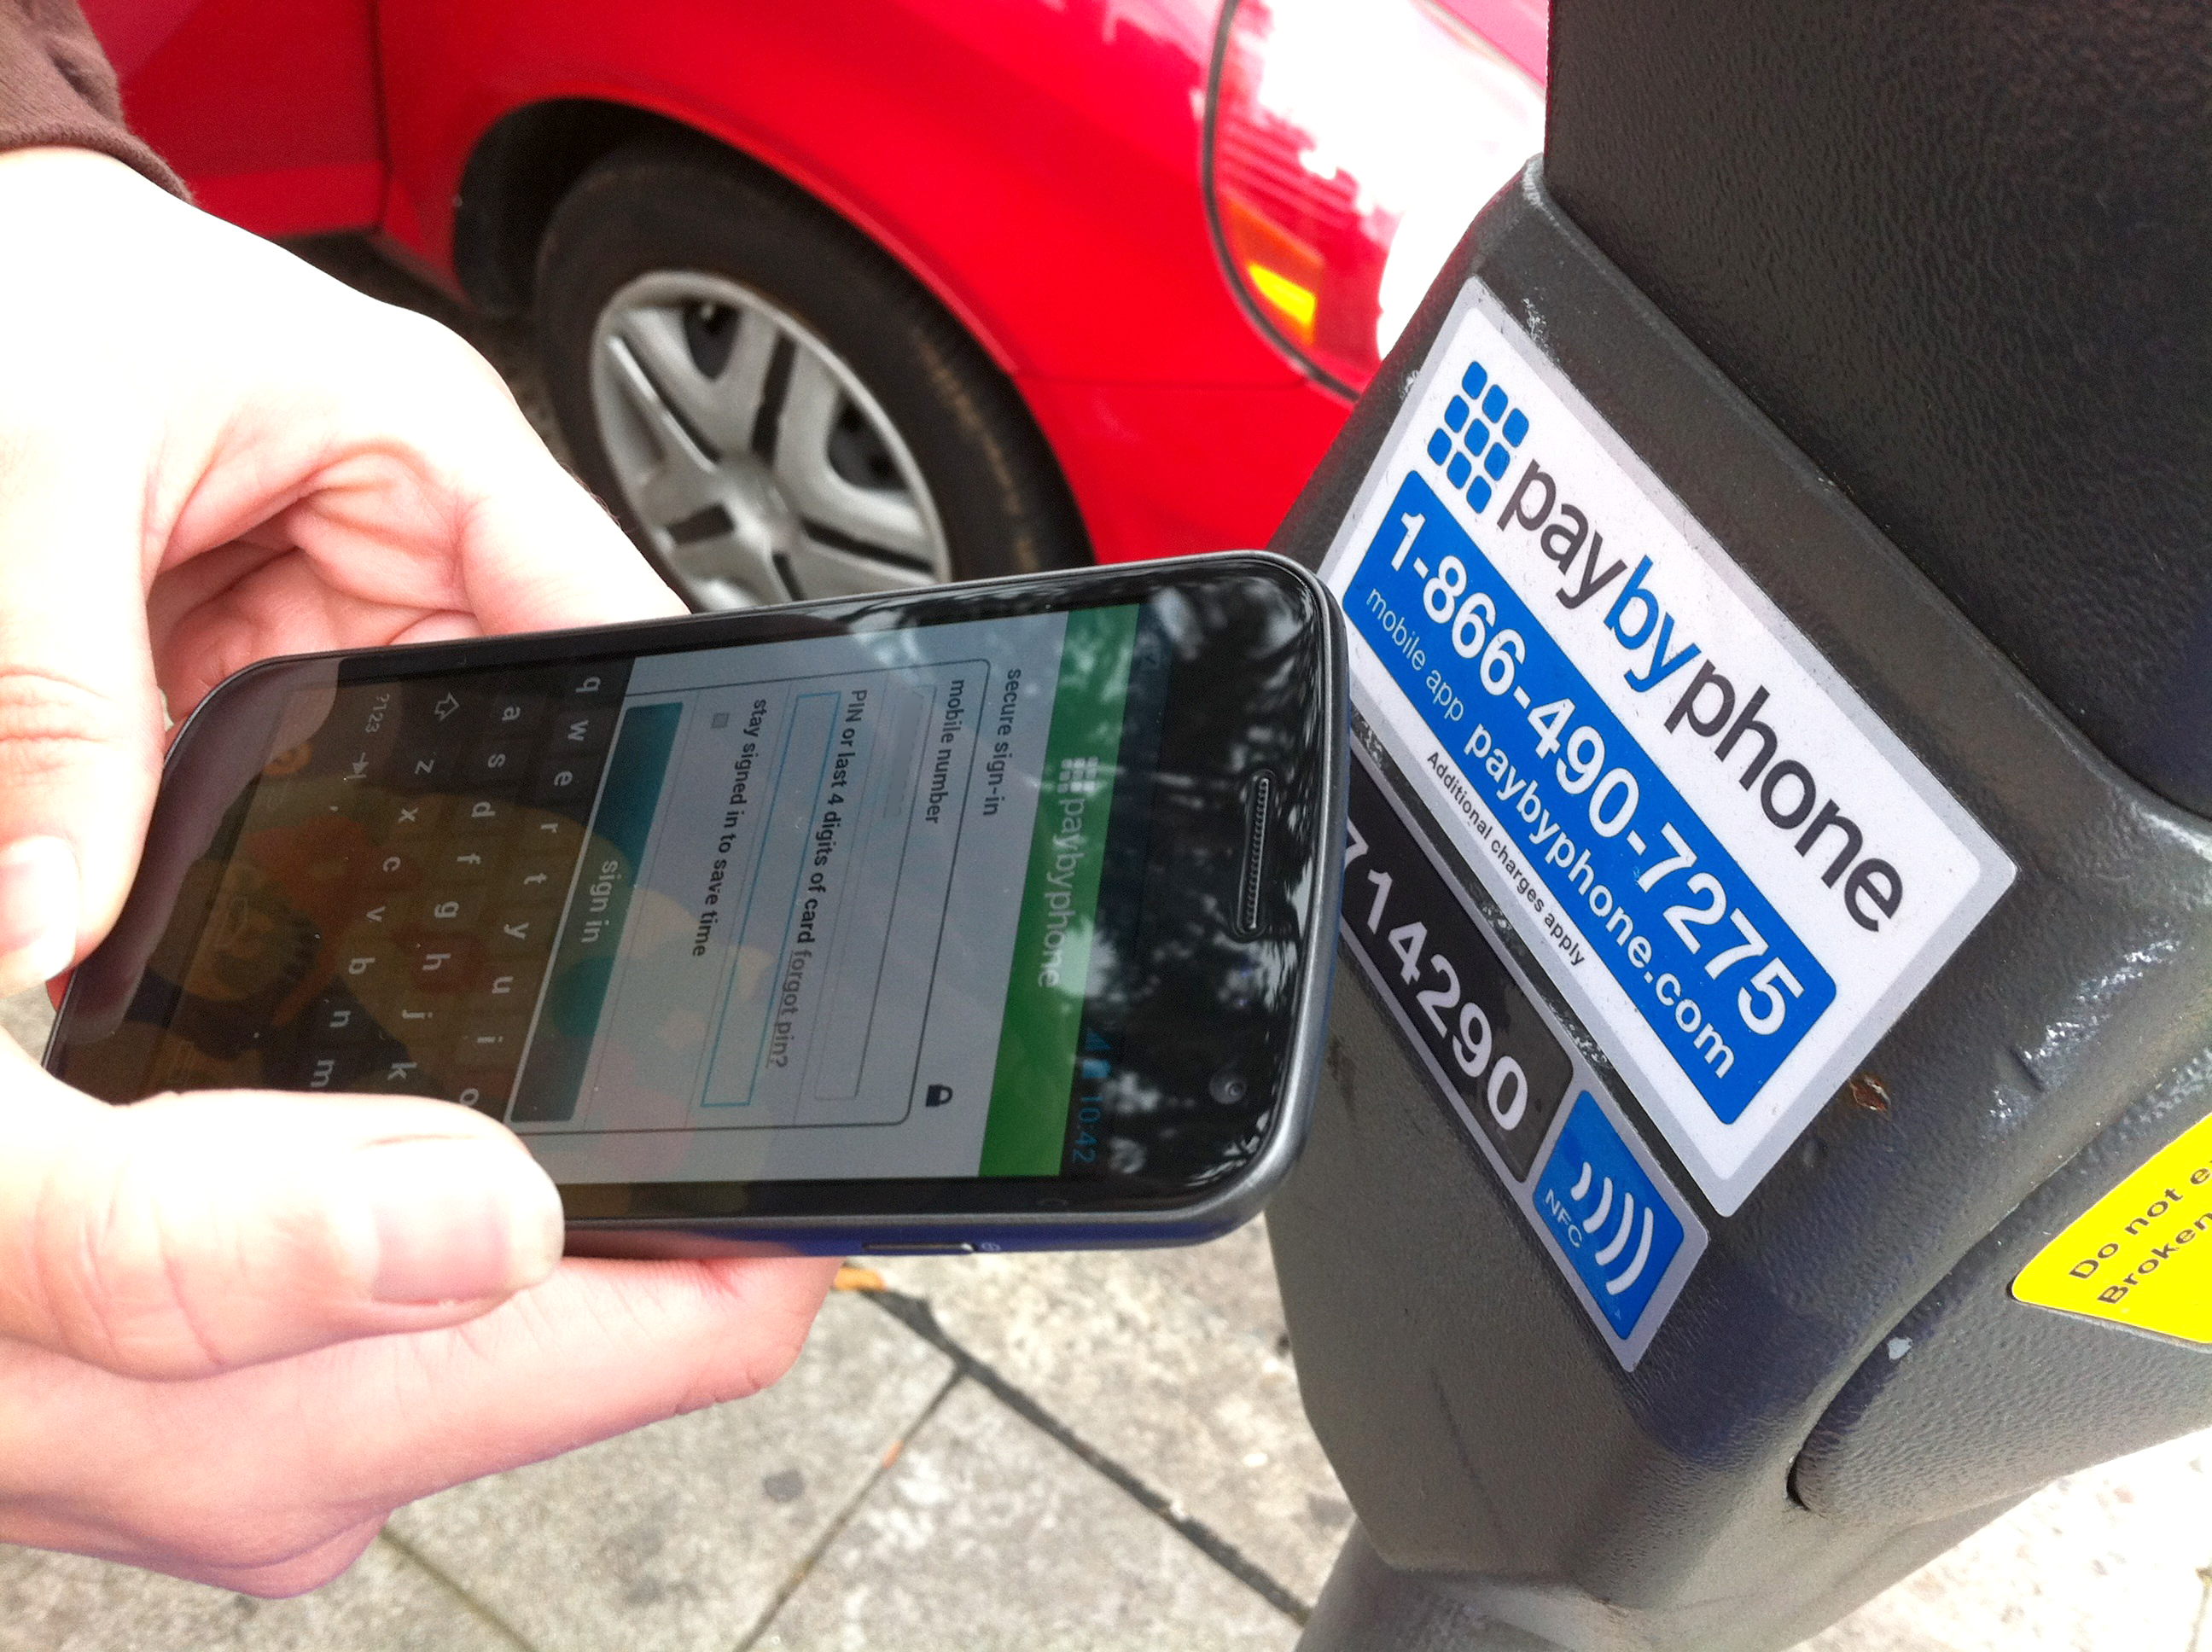 Mobile parking payments app (credits: Jason Tester Guerrilla Futures / Flickr Creative Commons Attribution-NoDerivs 2.0 Generic (CC BY-ND 2.0))